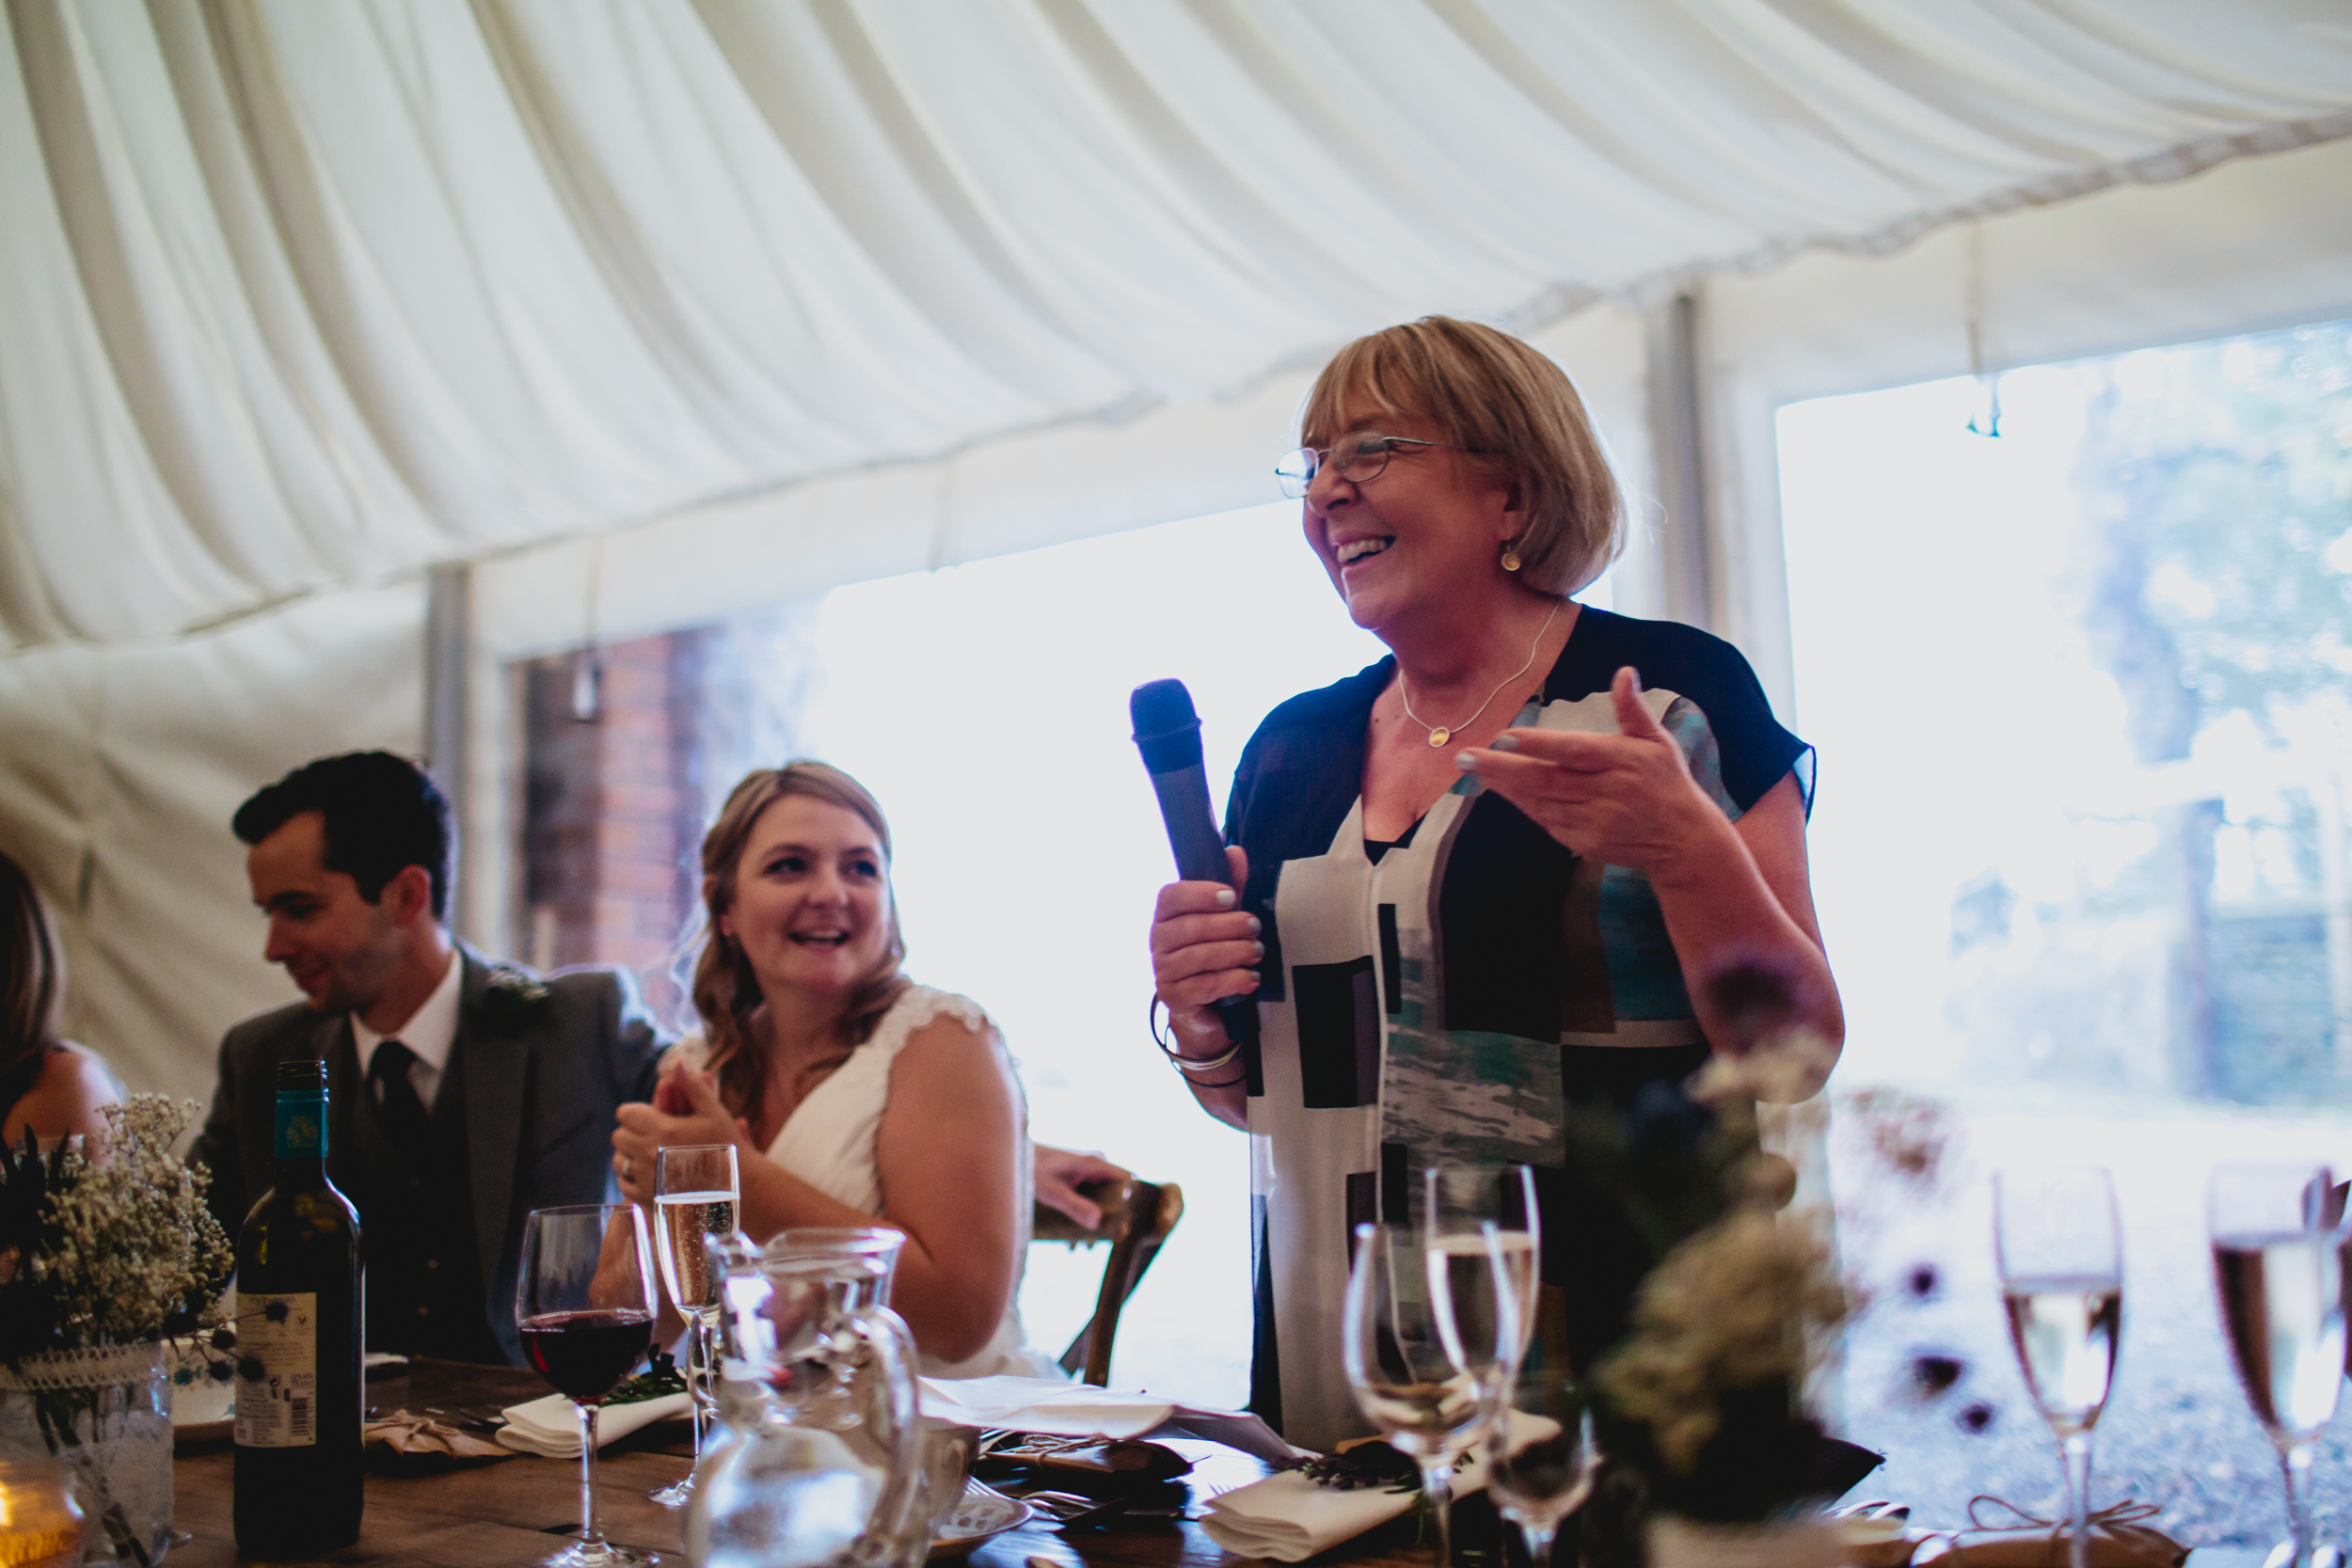 Mother of the bride speech at a Scottish wedding